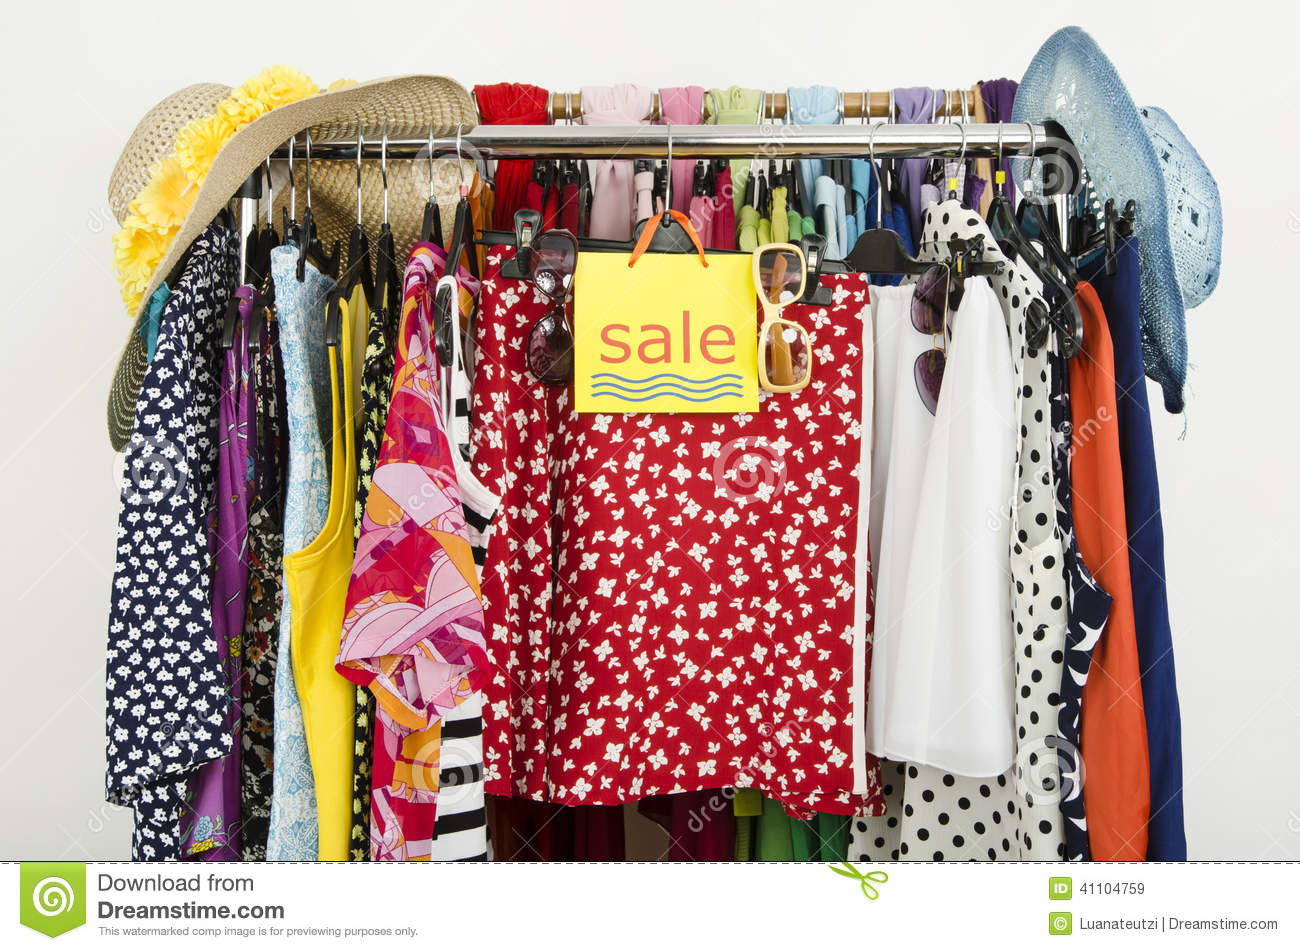 cute summer outfits displayed on hangers with a big sale sign stock image image of nobody. Black Bedroom Furniture Sets. Home Design Ideas